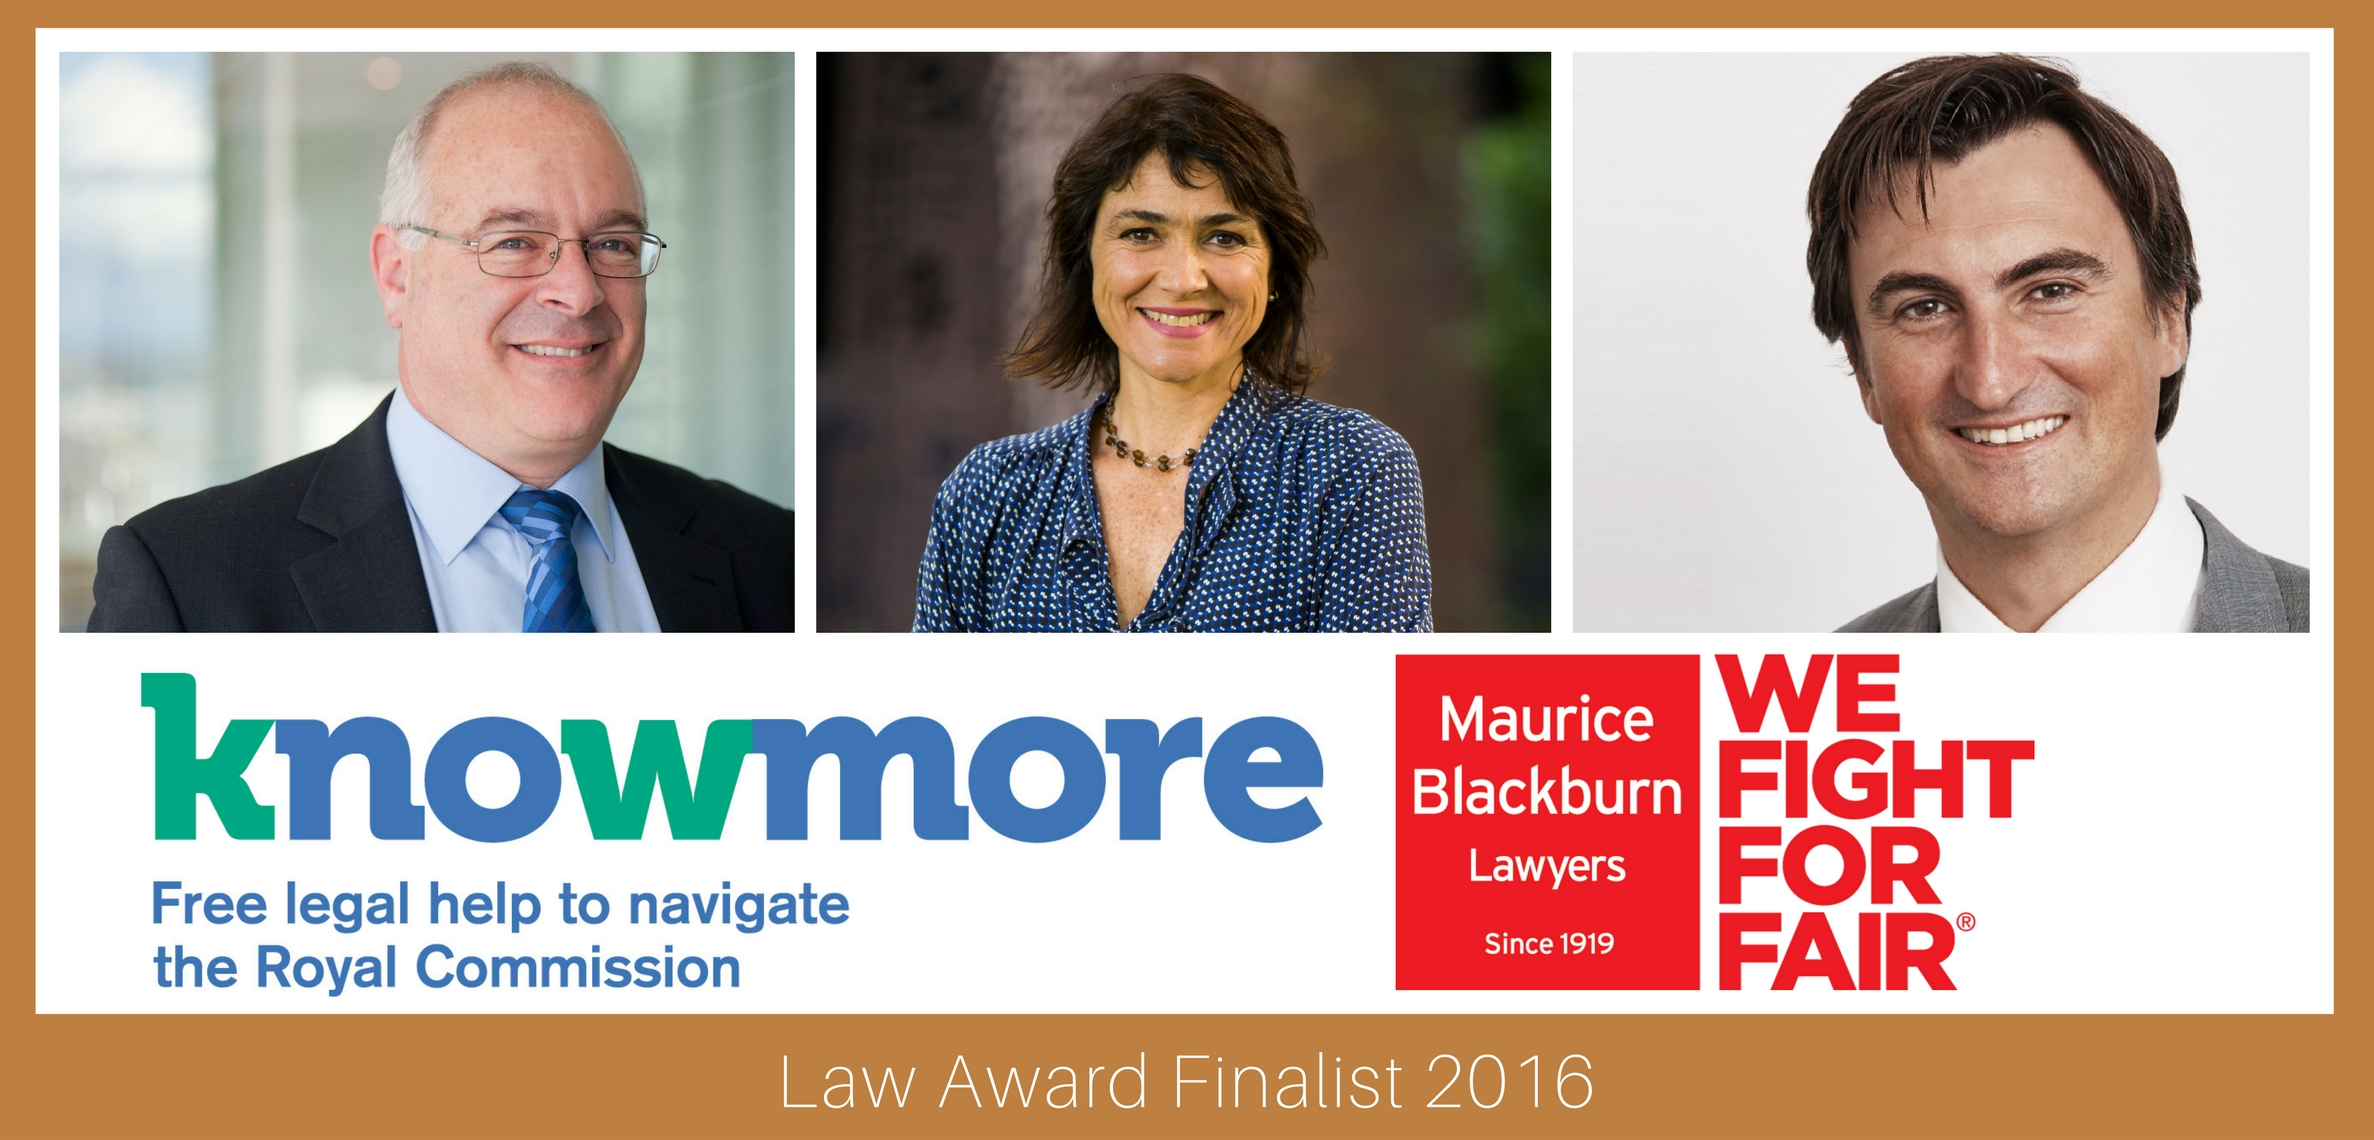 Law Award finalists 2016